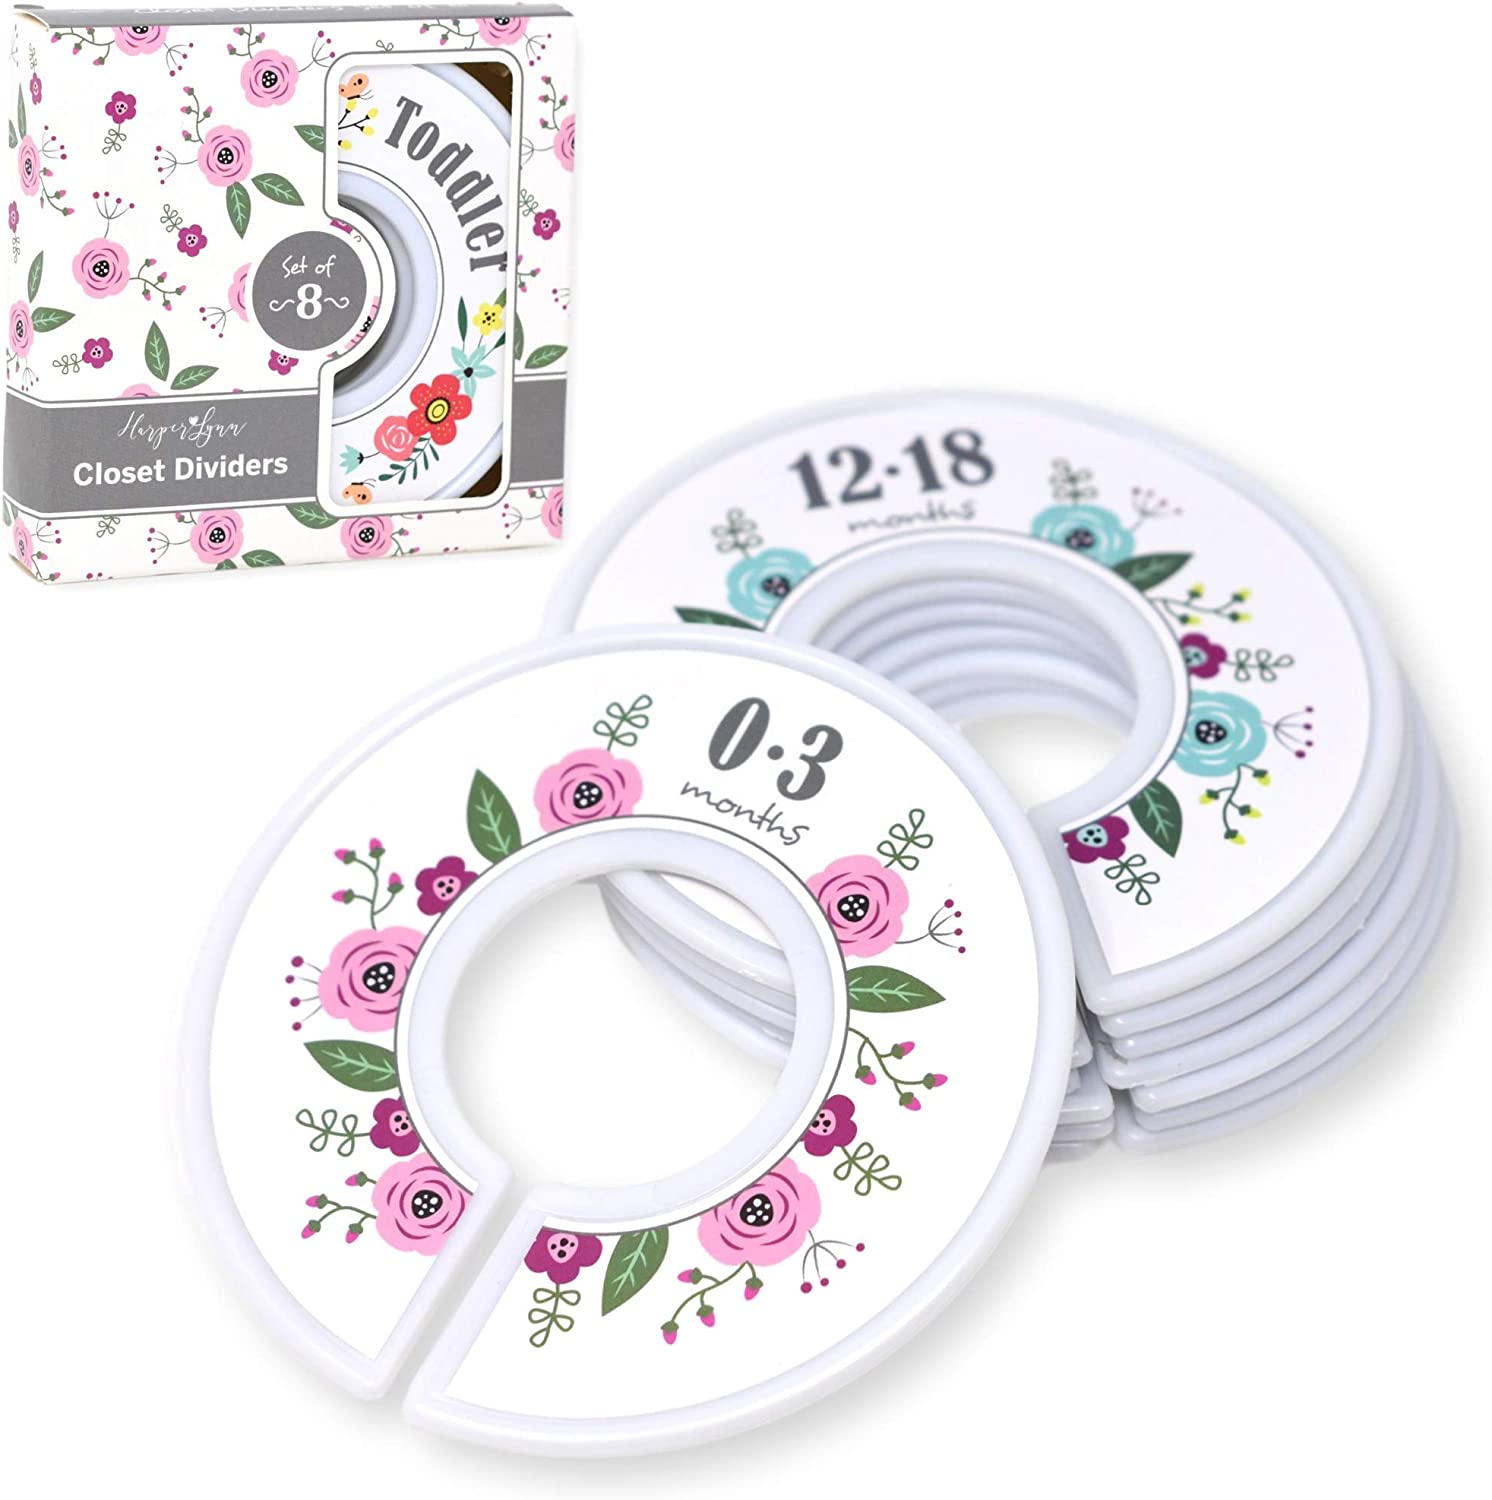 Harperlynn Floral Baby Closet Dividers - Set of 8 Nursery Clothes Organizers - Size Newborn Infant to 2T Toddler. Great Gifts for First Time Parents of Girl. Fits 1.25 Inch Rod.